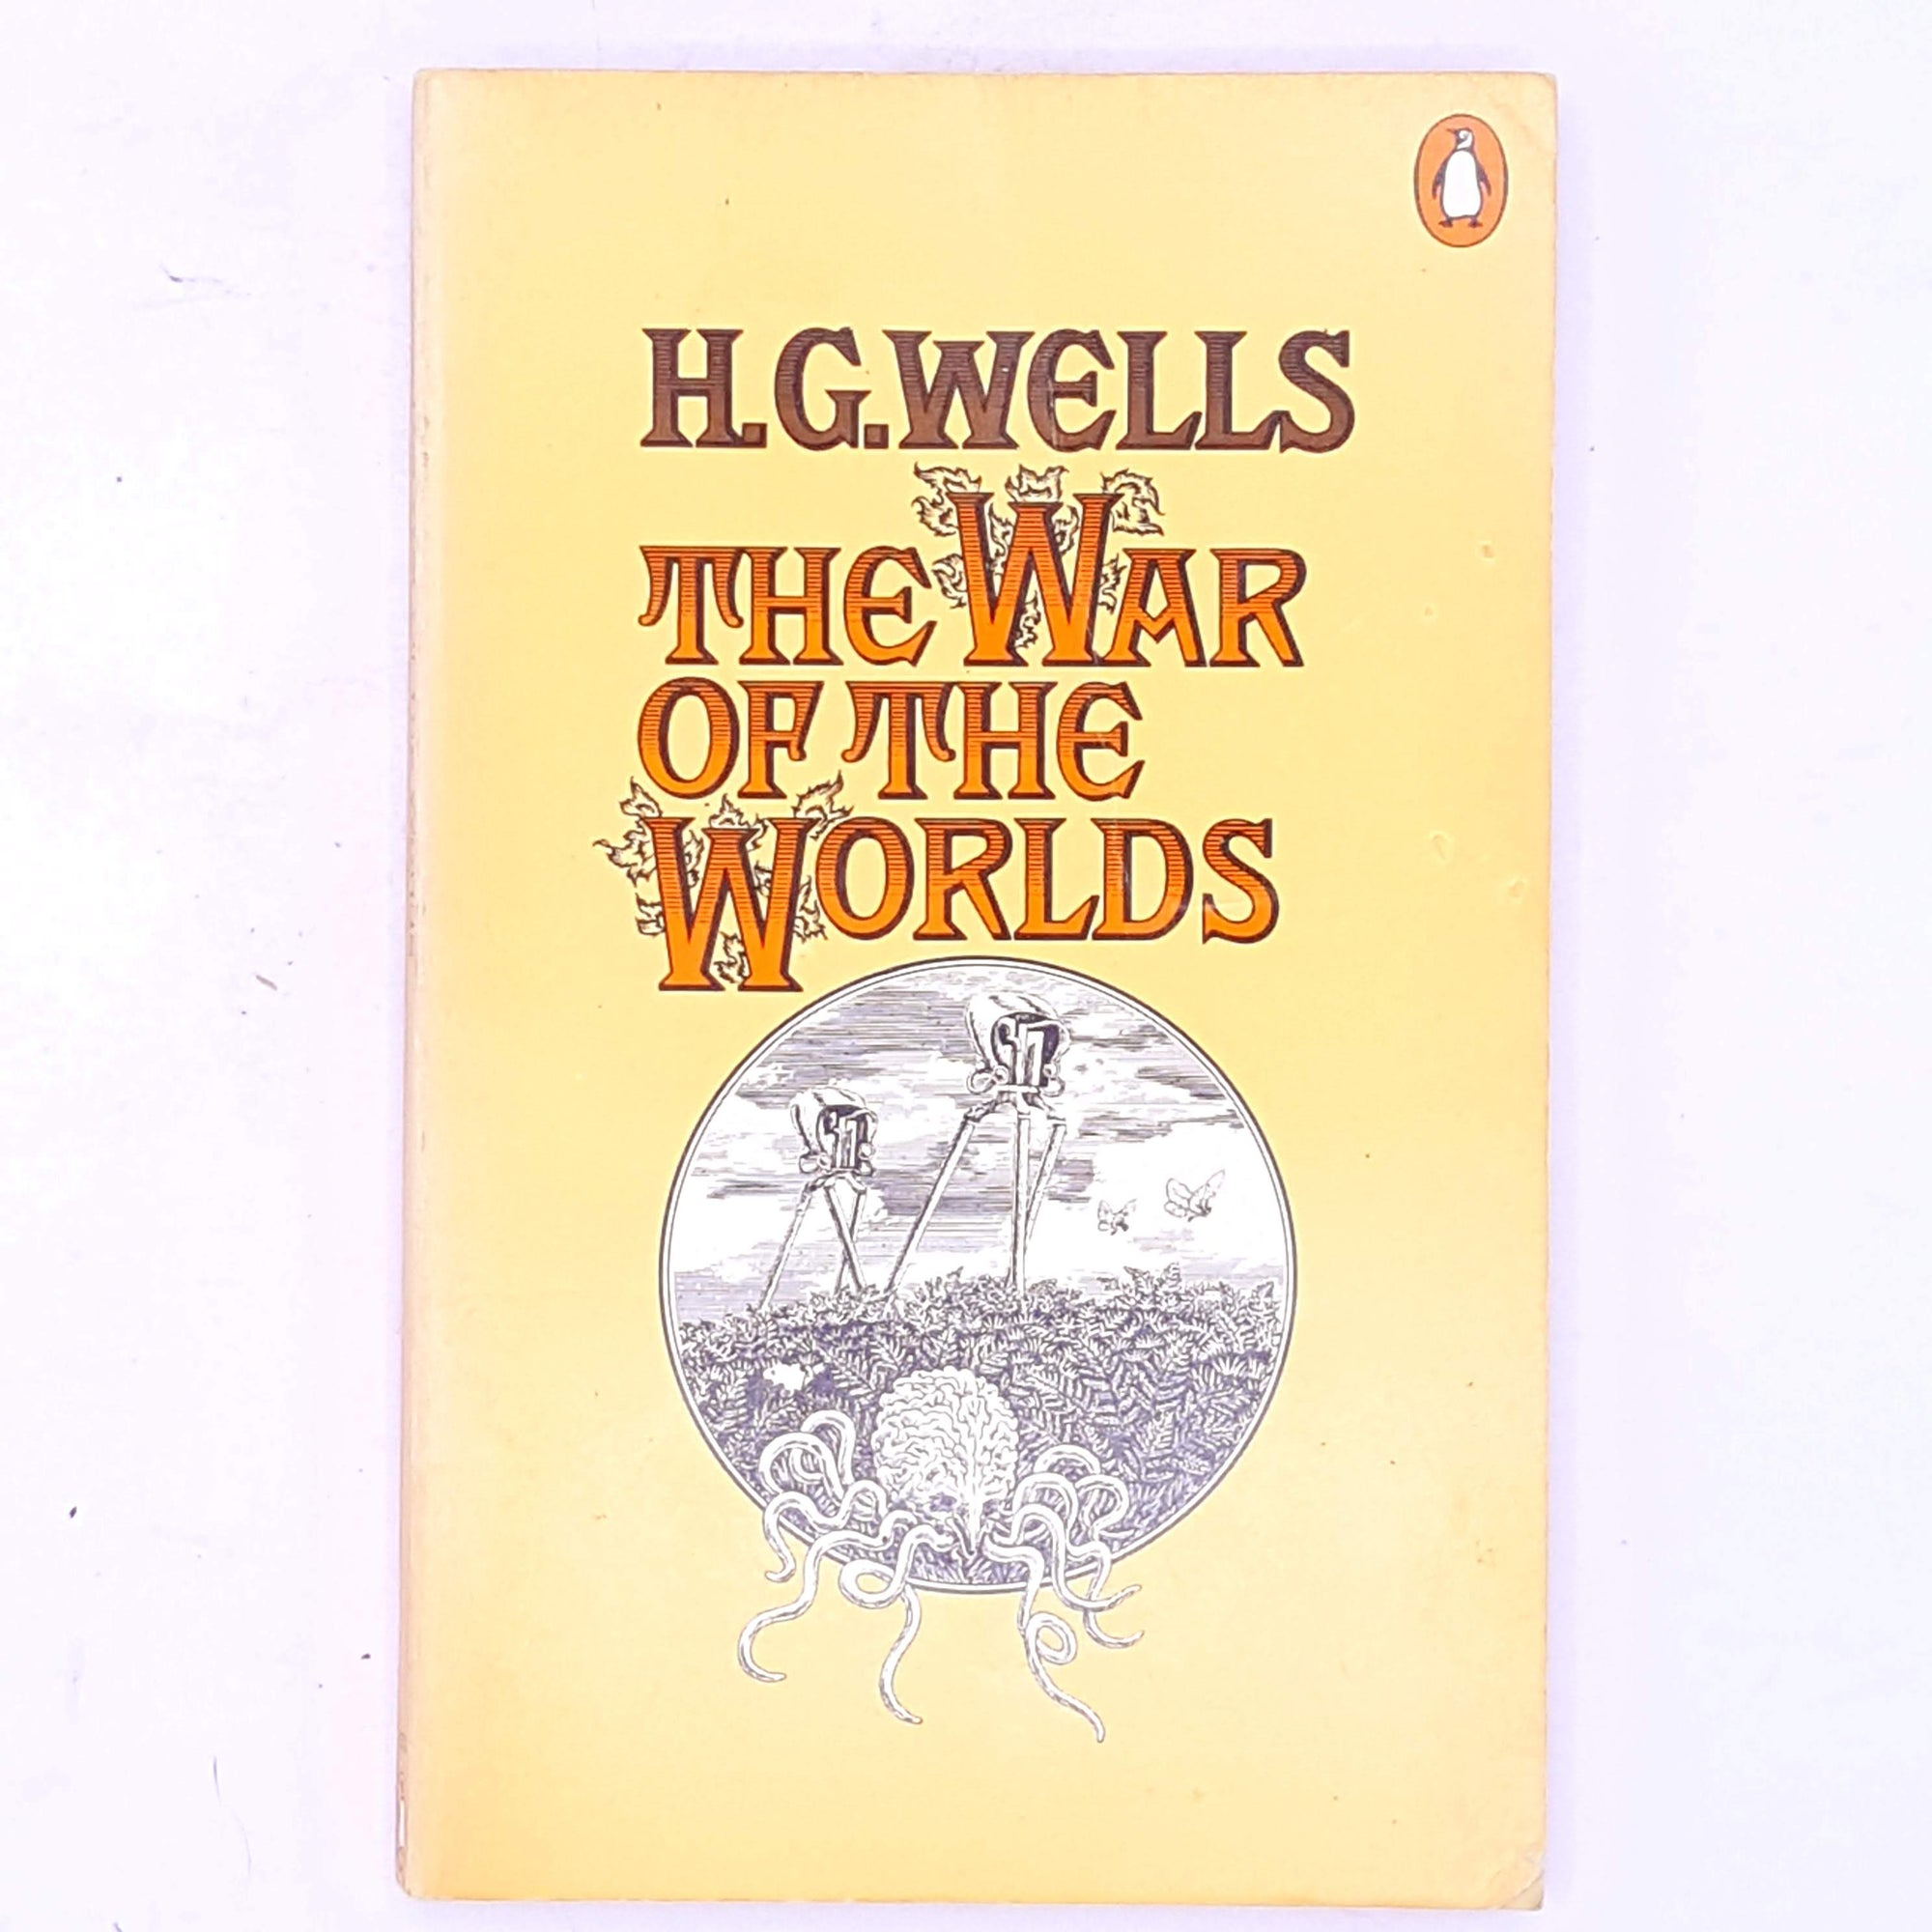 H.G. Wells, The War of the Worlds, Penguin 1969